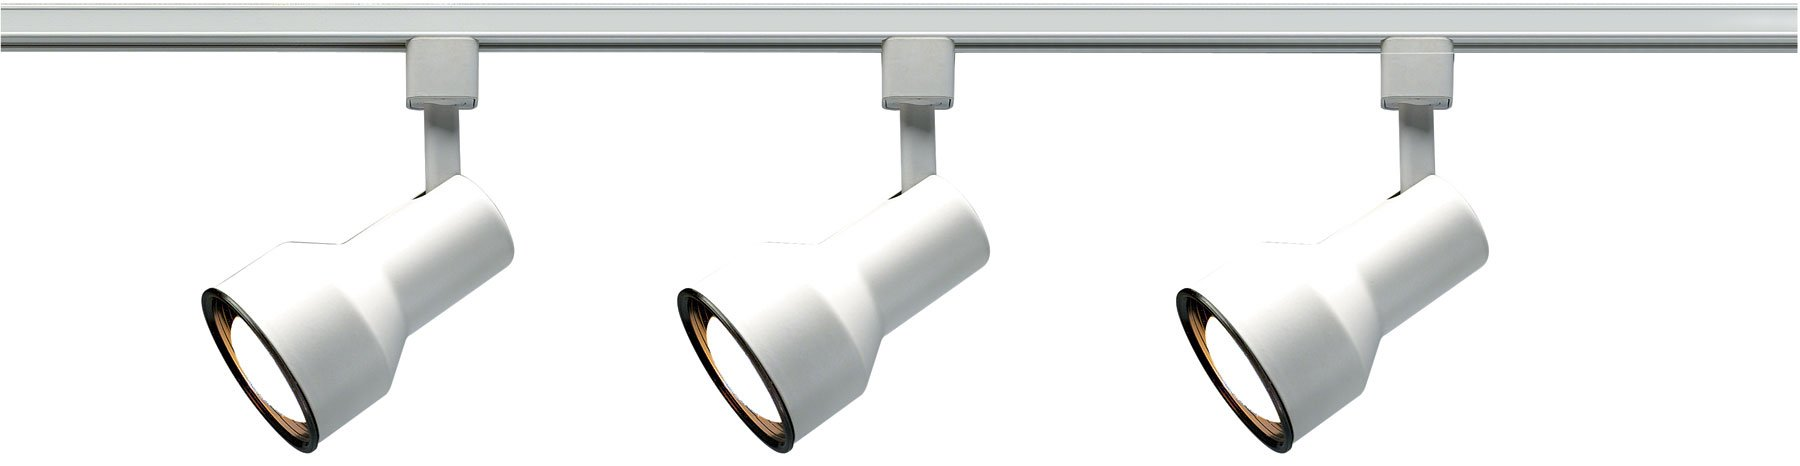 Nuvo Lighting TK320 3-Light Step-Cylinder Track-Lighting Kit, White